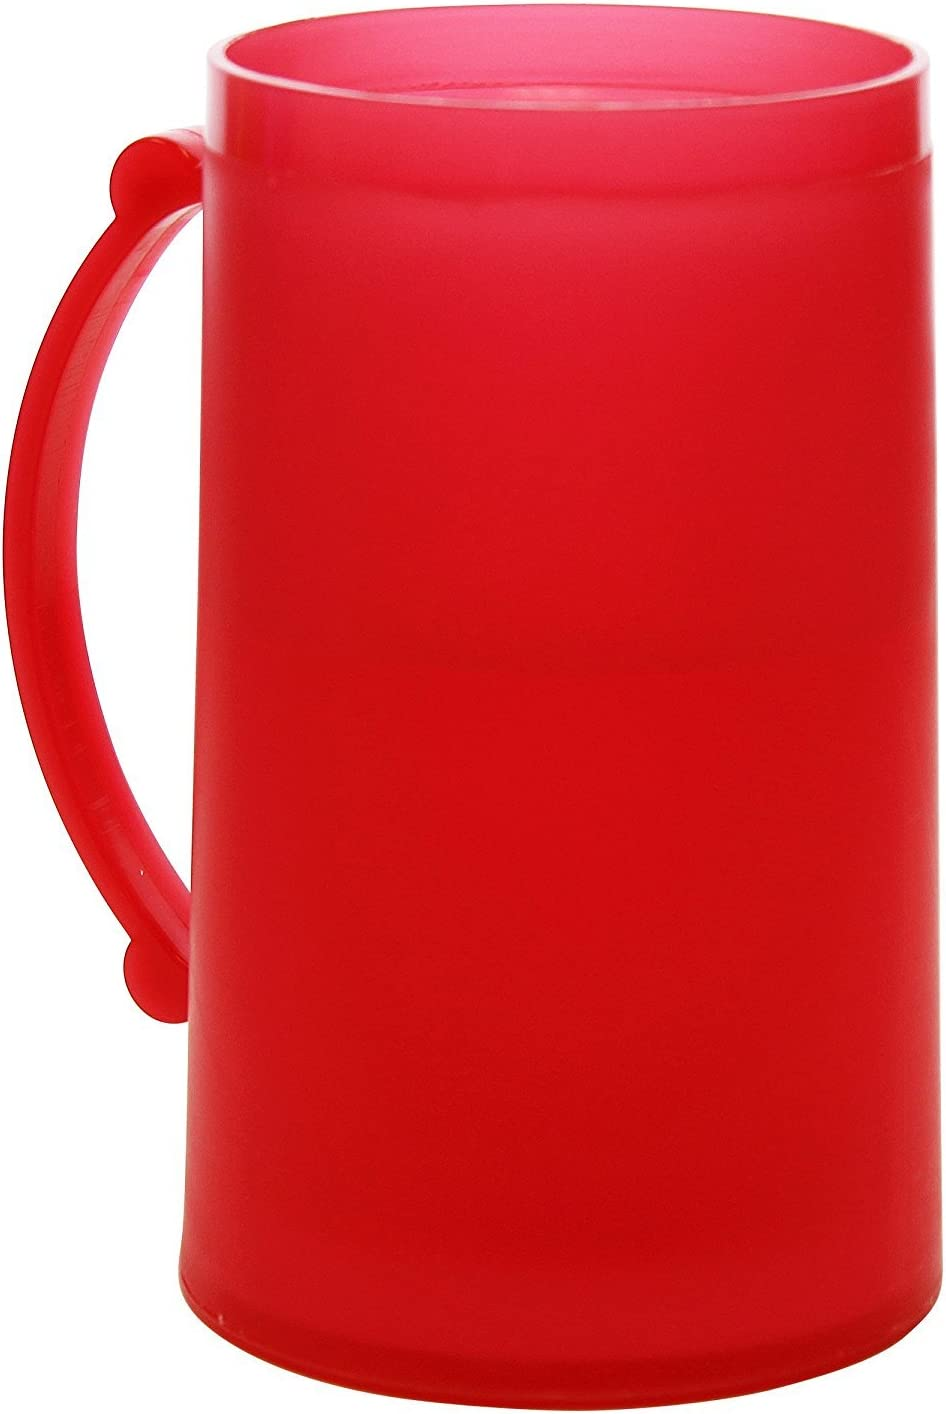 Red Frosty Freezer Mug